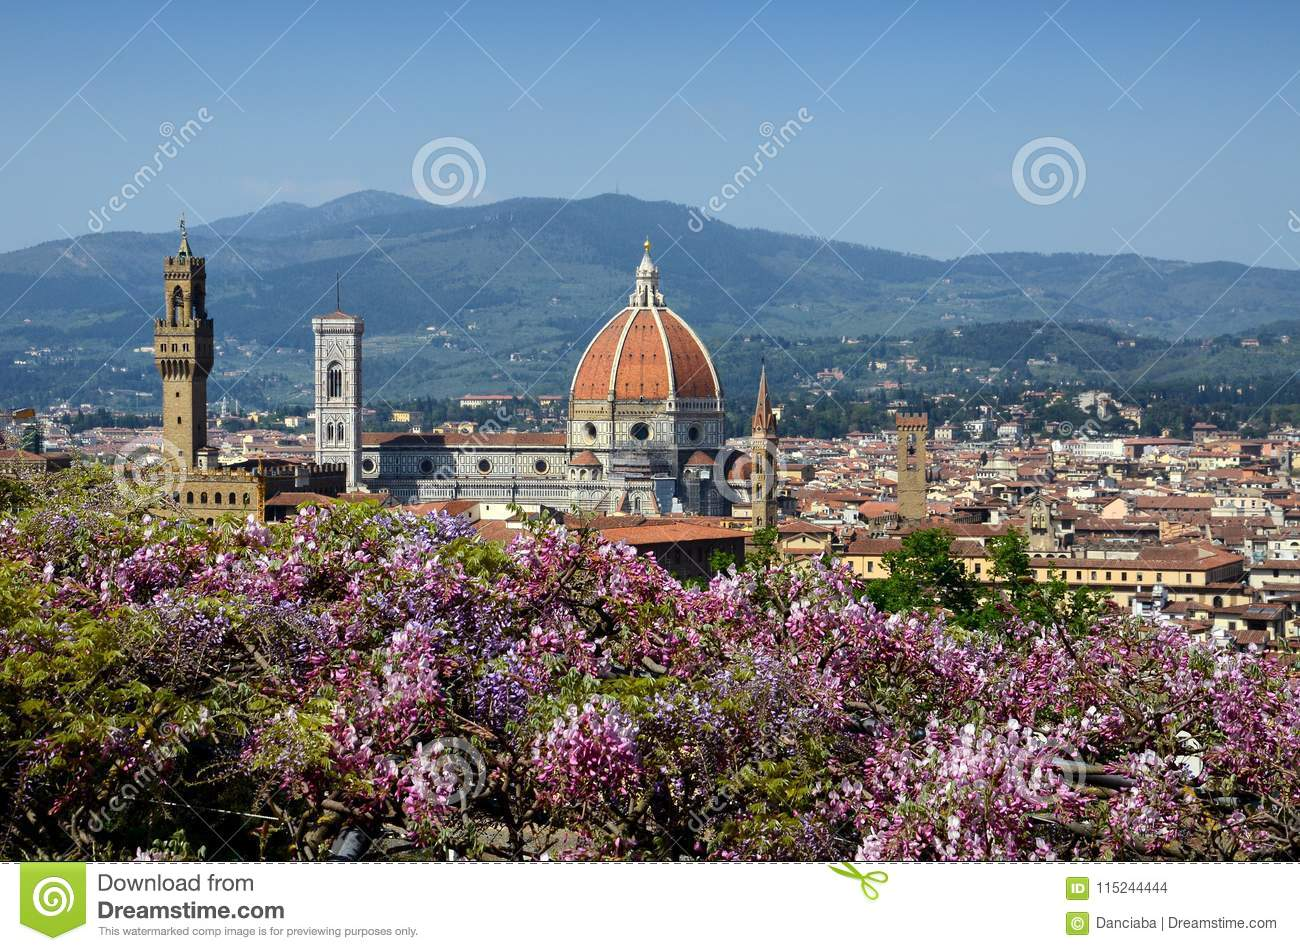 Cathedral Of Santa Maria Del Fiore In Florence As Seen From